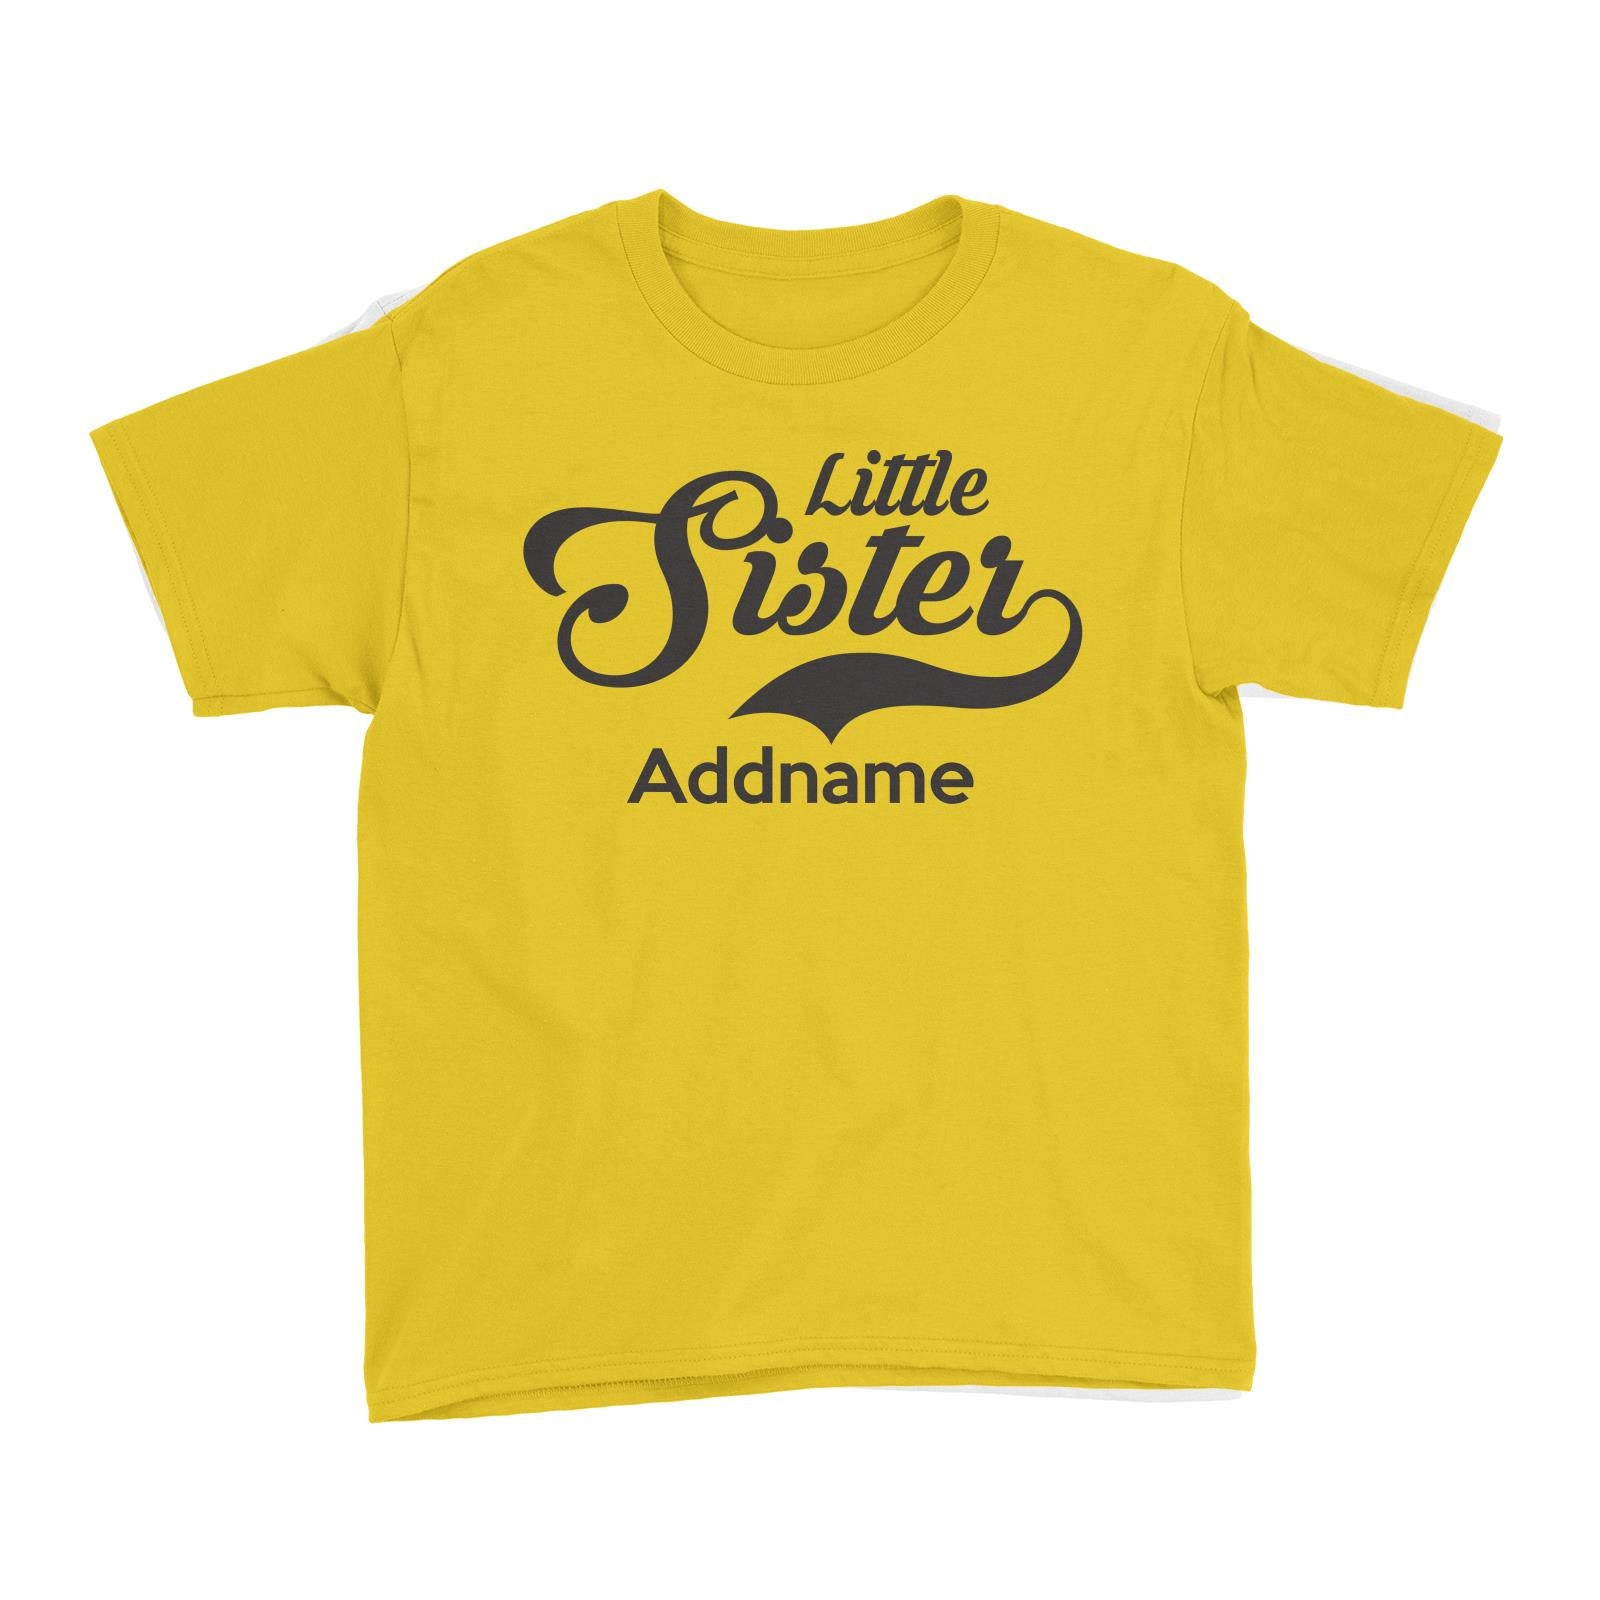 Retro Little Sister Addname Kid's T-Shirt  Matching Family Personalizable Designs